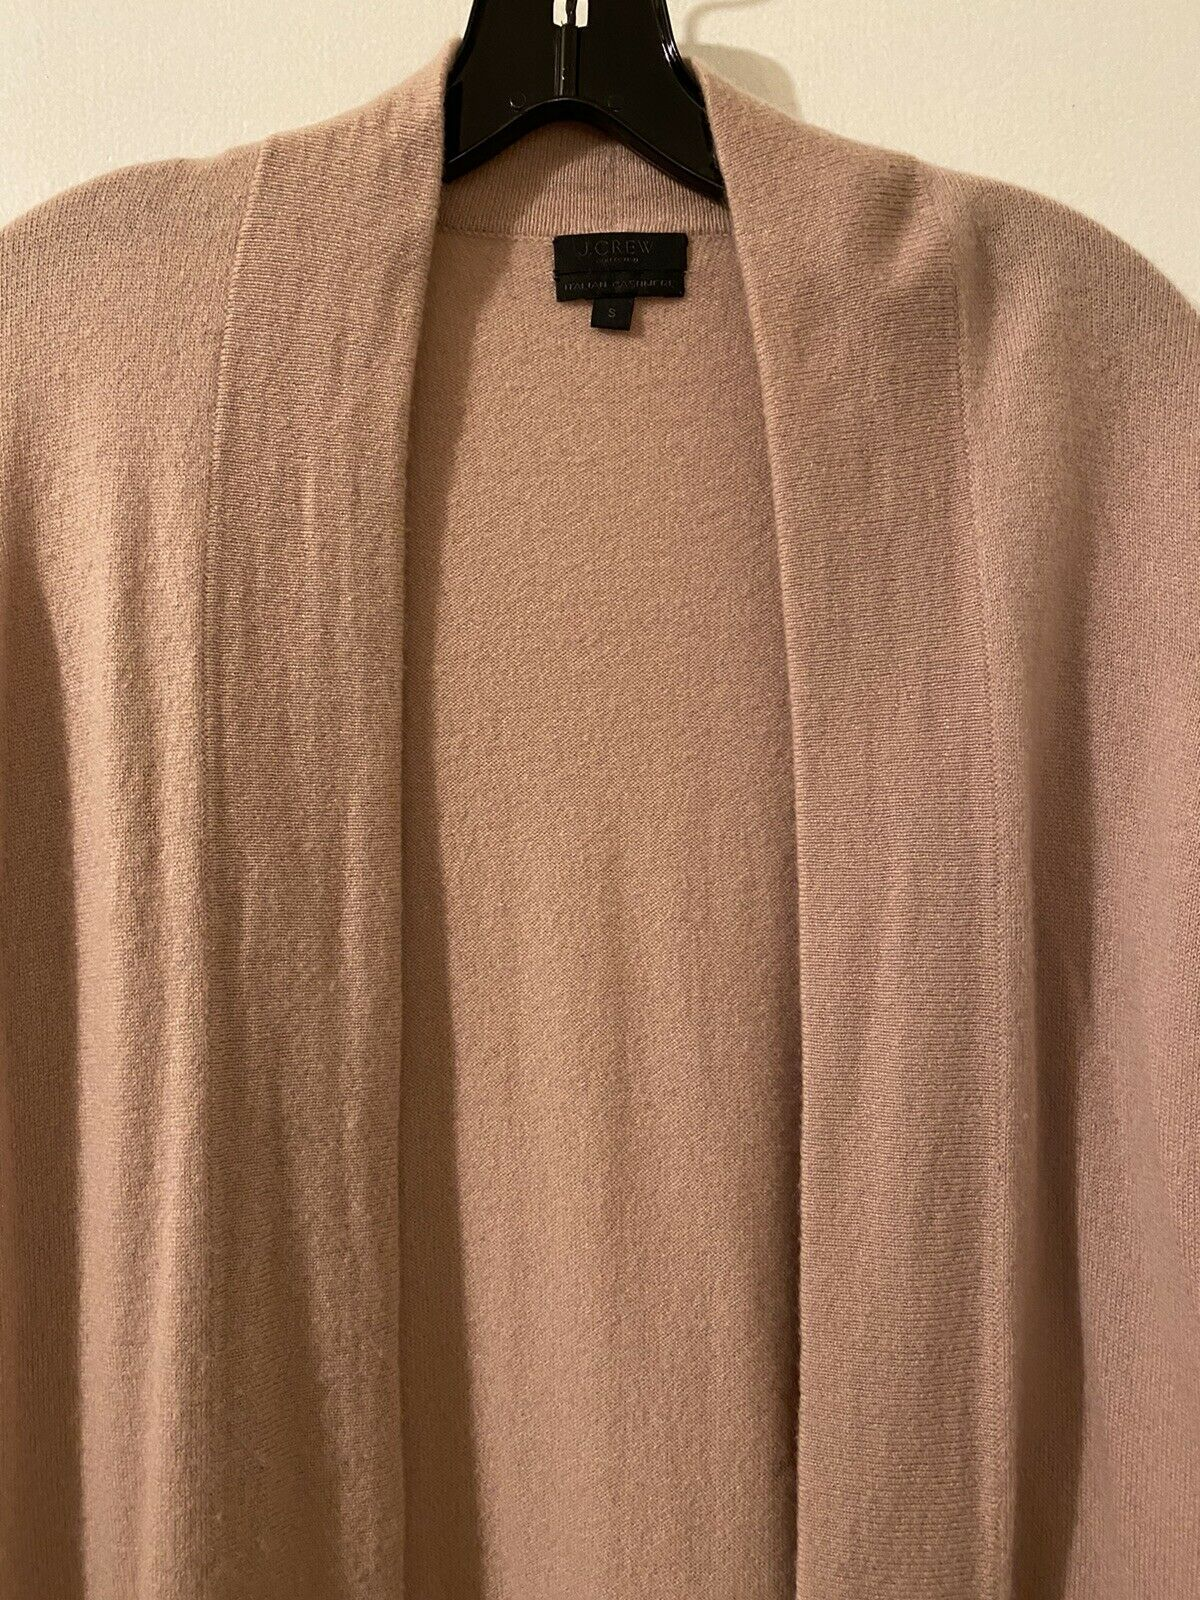 J. Crew Collection Cashmere Open Cardigan Size S … - image 2